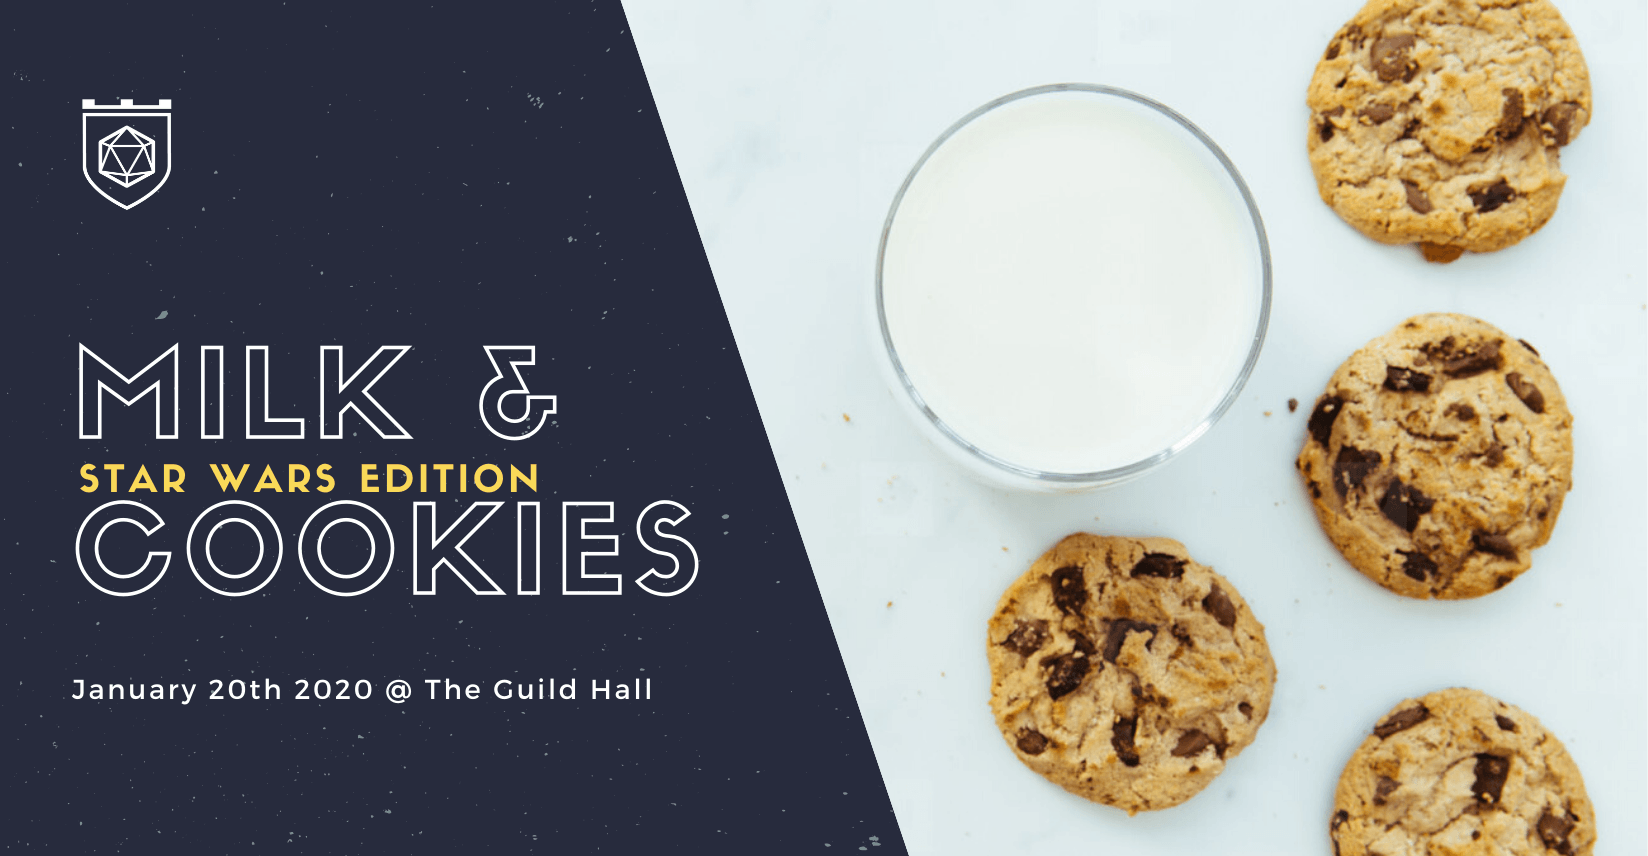 Milk & Cookies Star Wars Edition